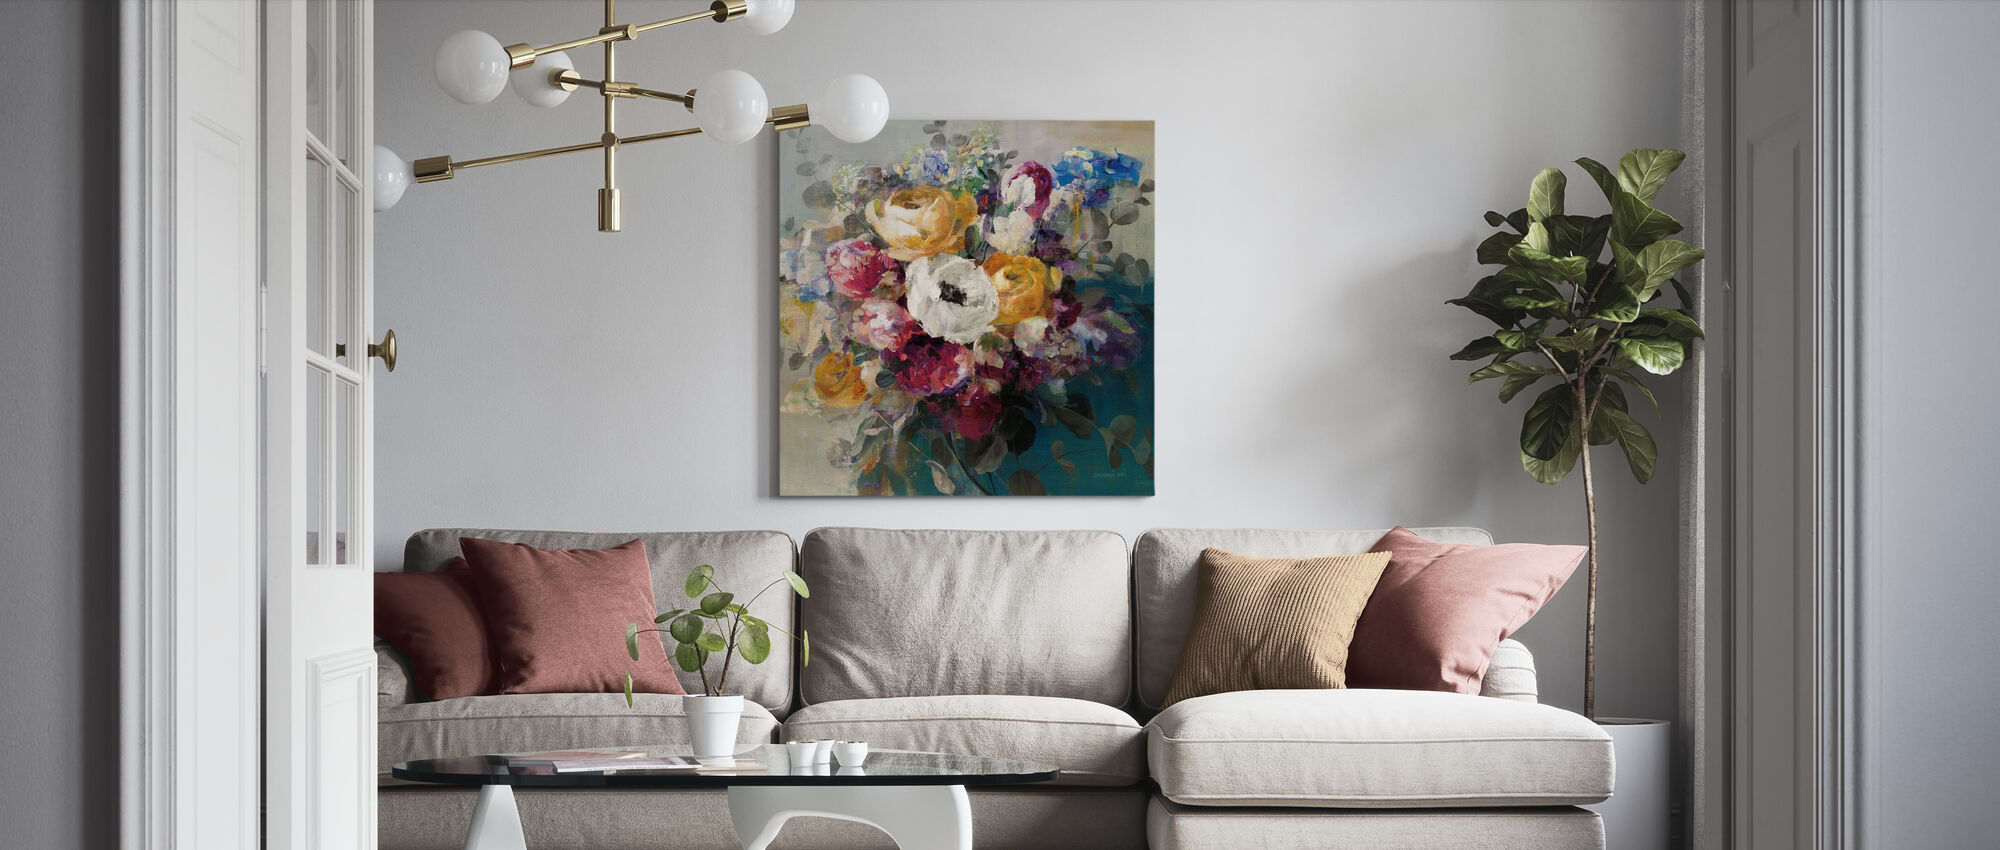 Fall Bouquet - Canvas print - Living Room